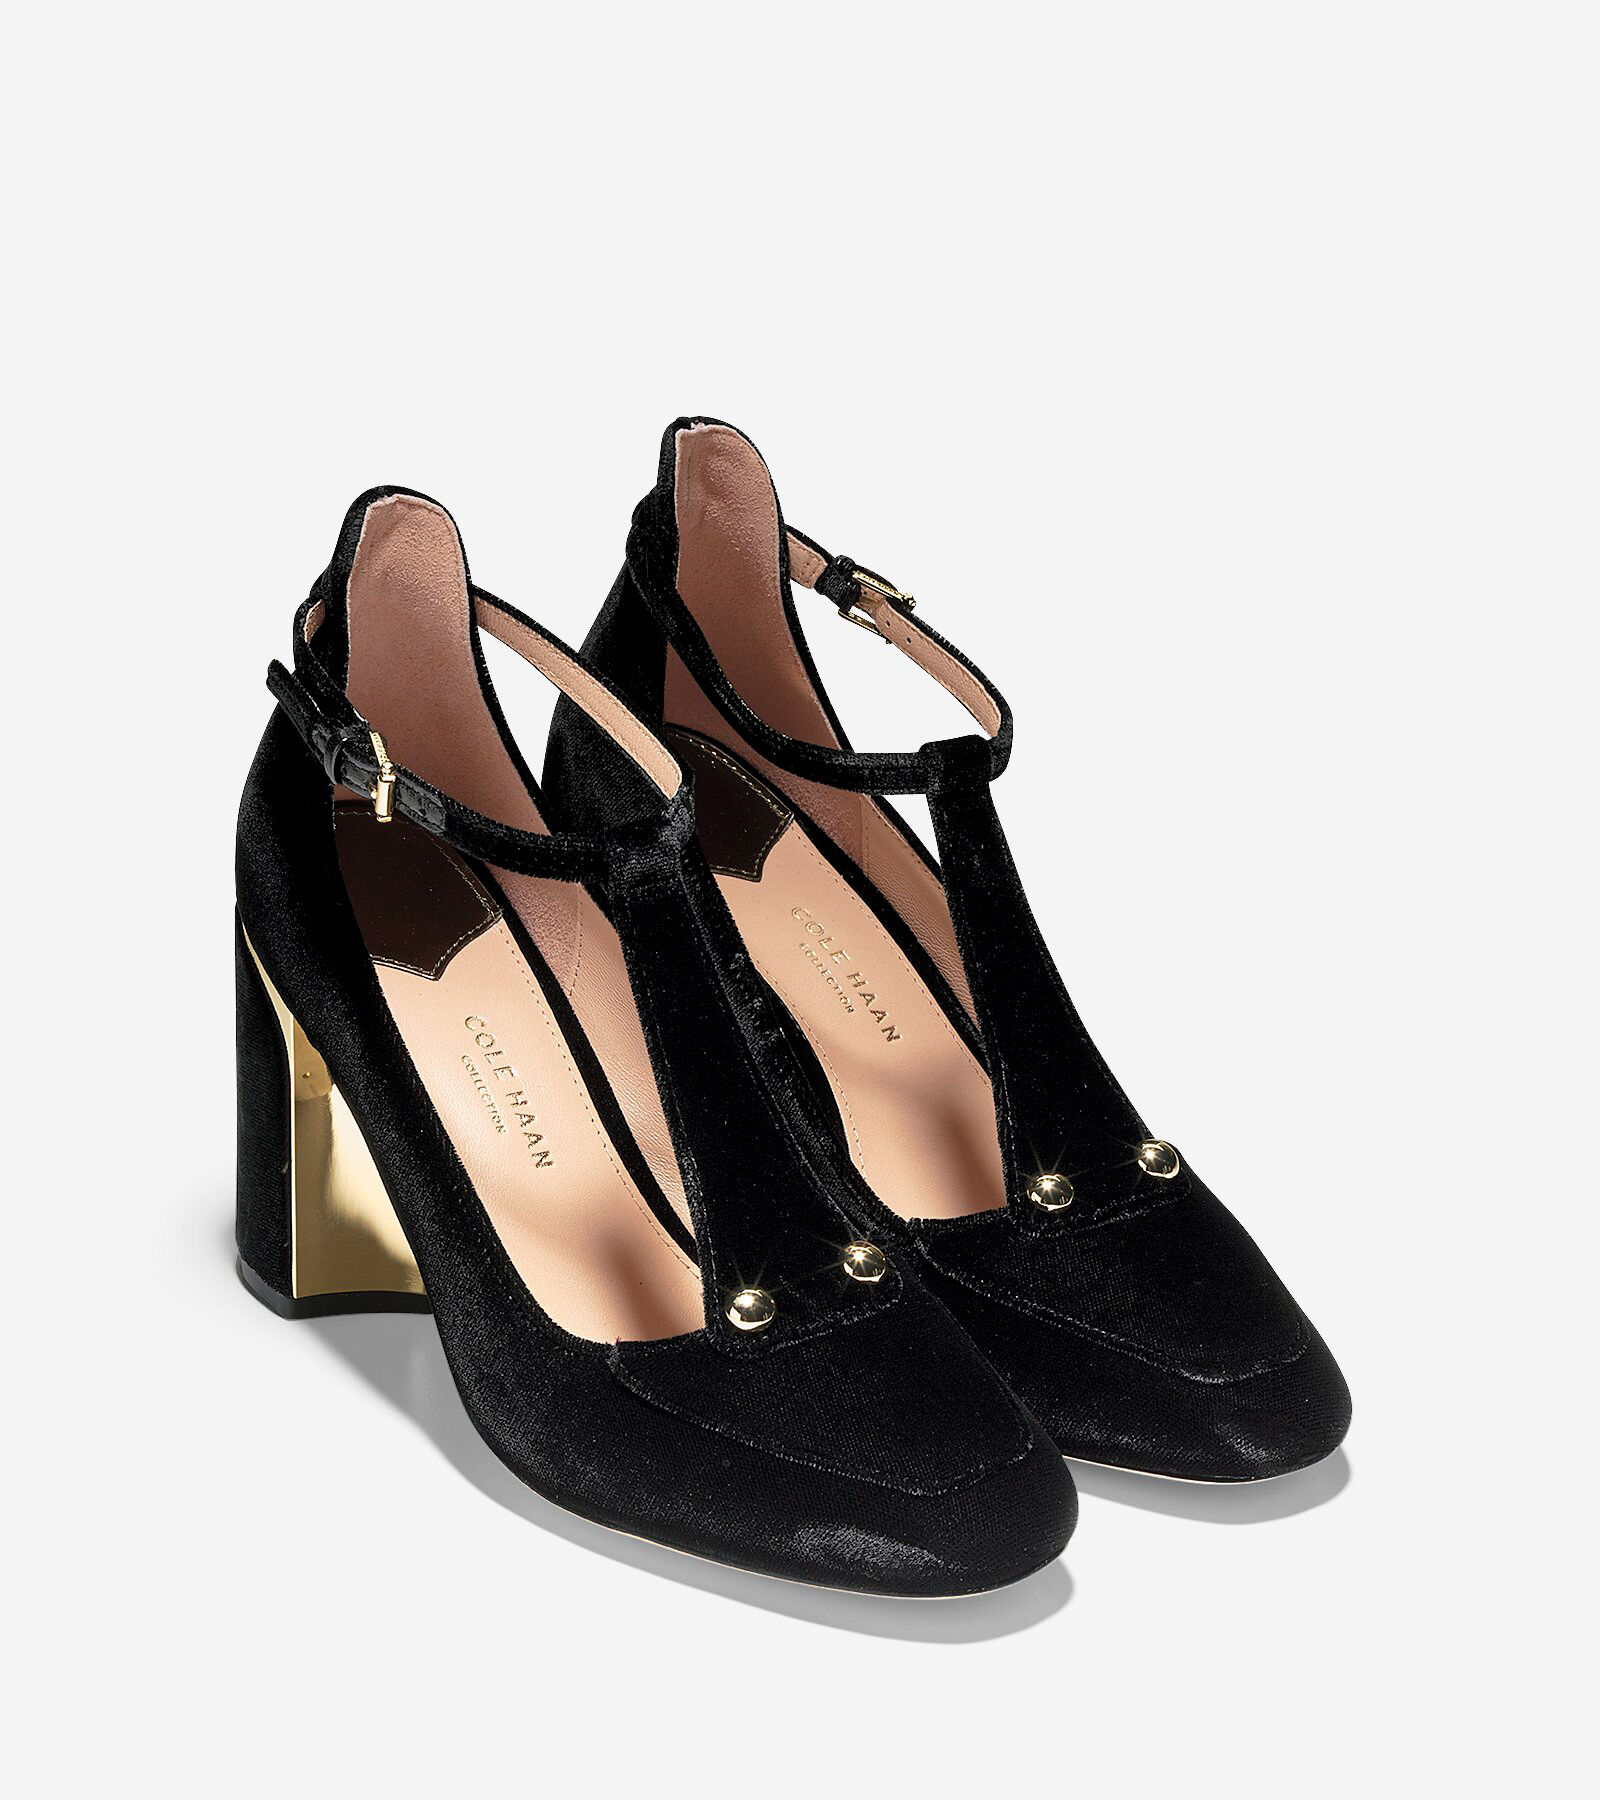 Cole Haan Velvet T-Strap Pumps cheap official site affordable for sale free shipping prices J14Uevz3